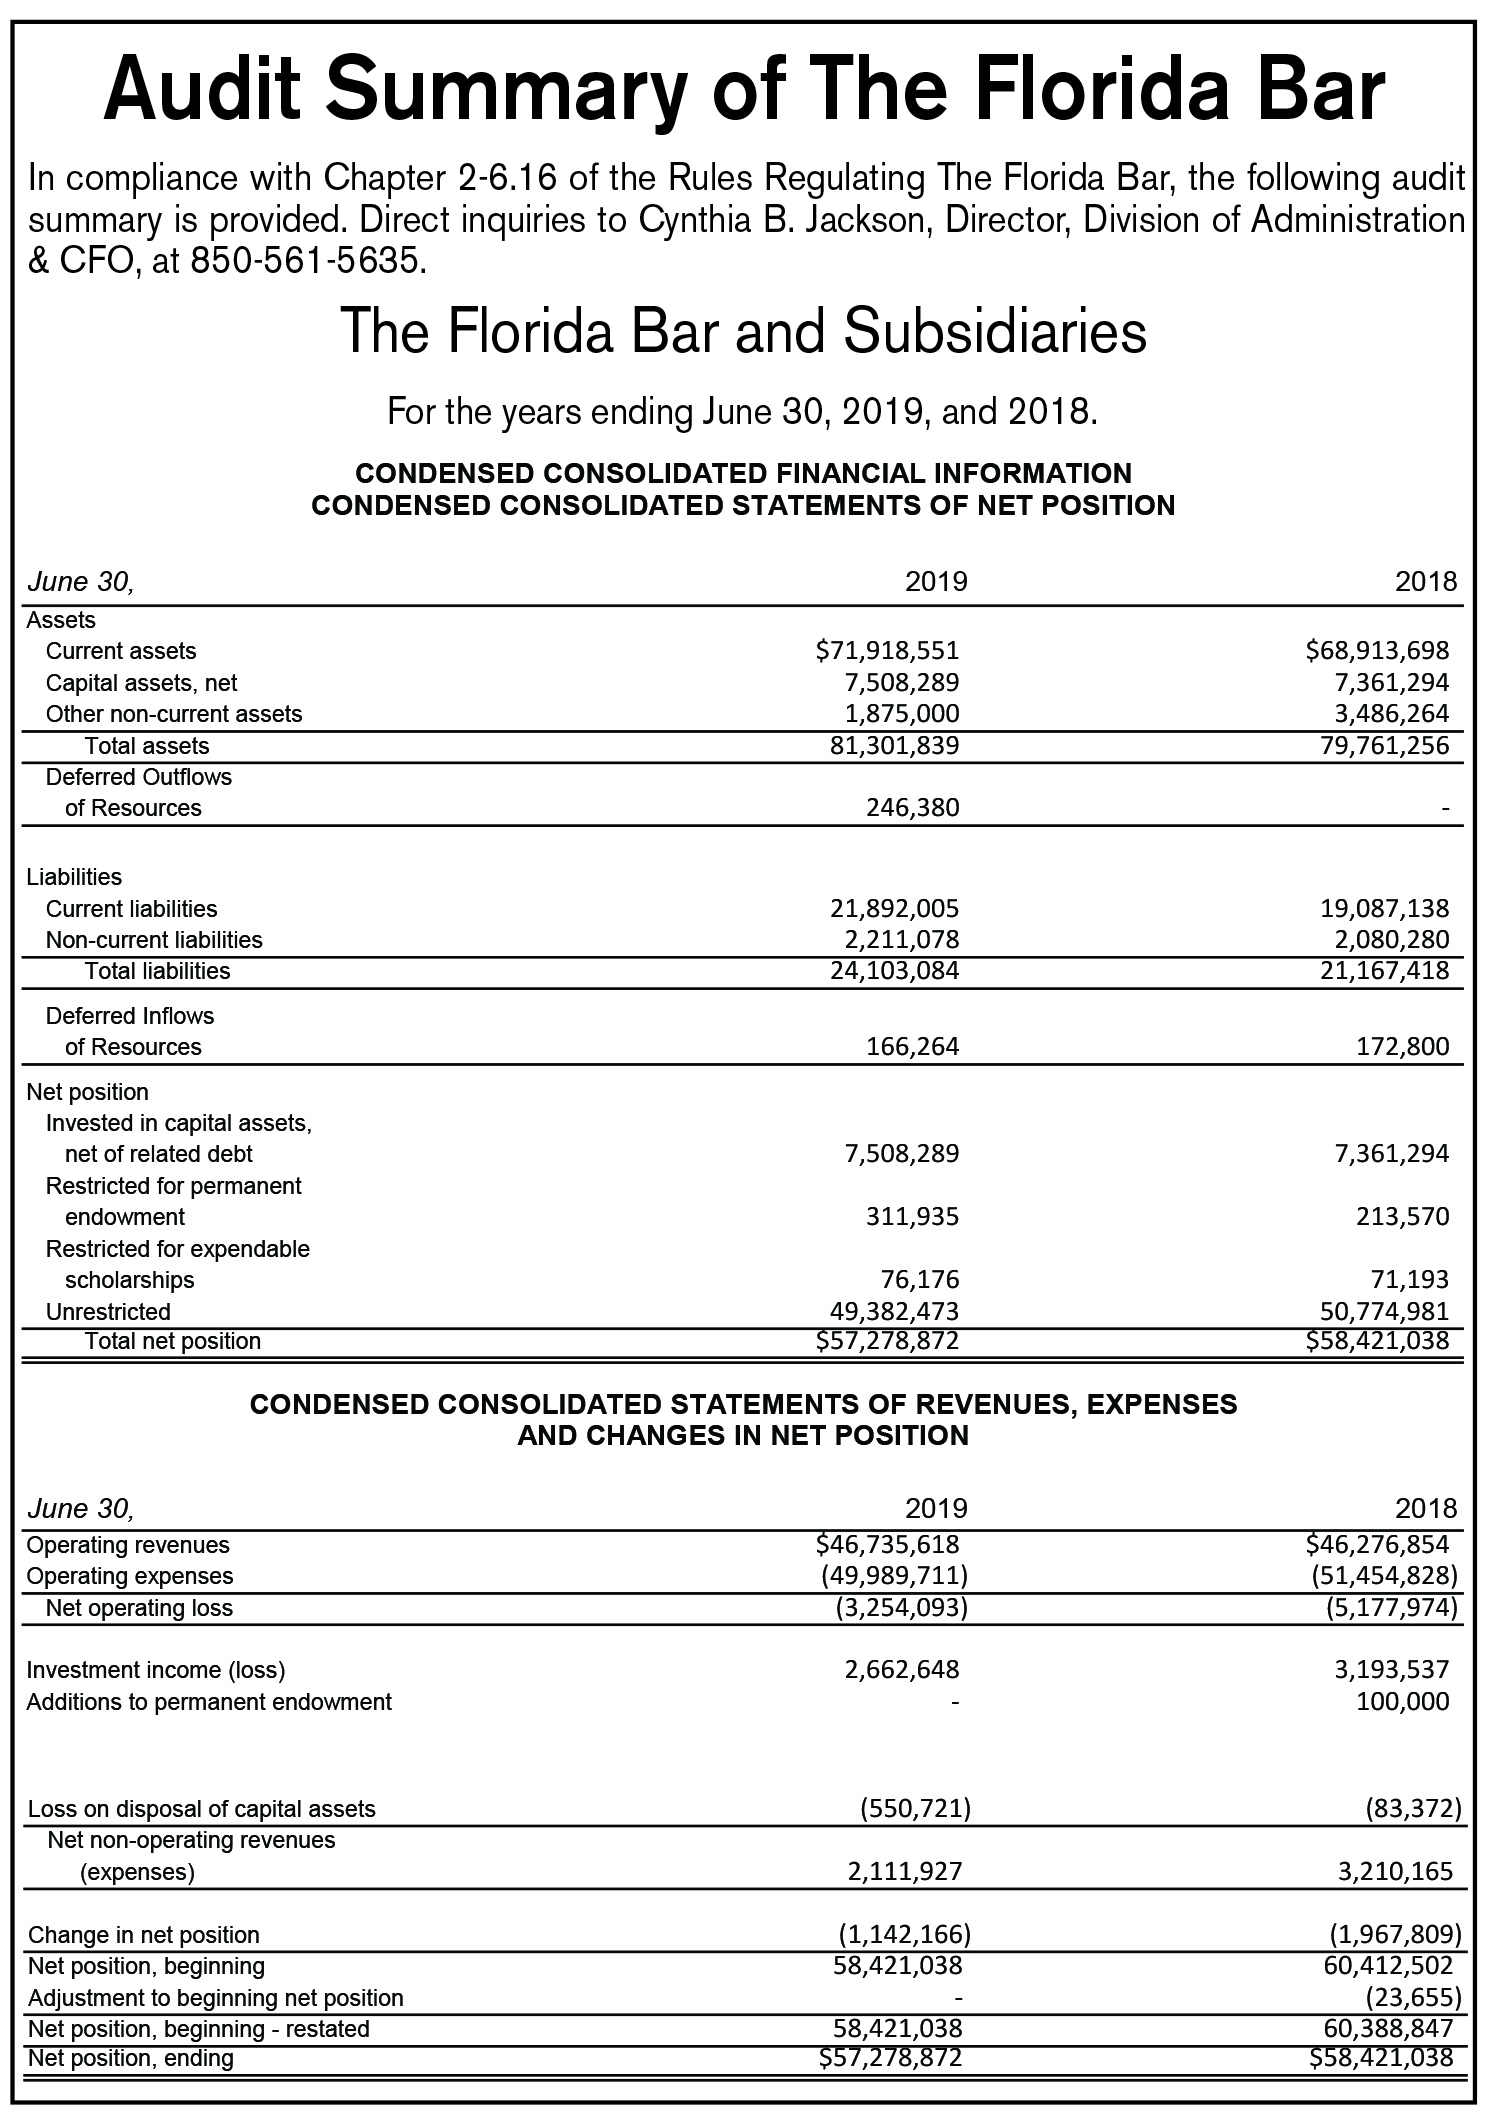 Audit Summary of The Florida Bar